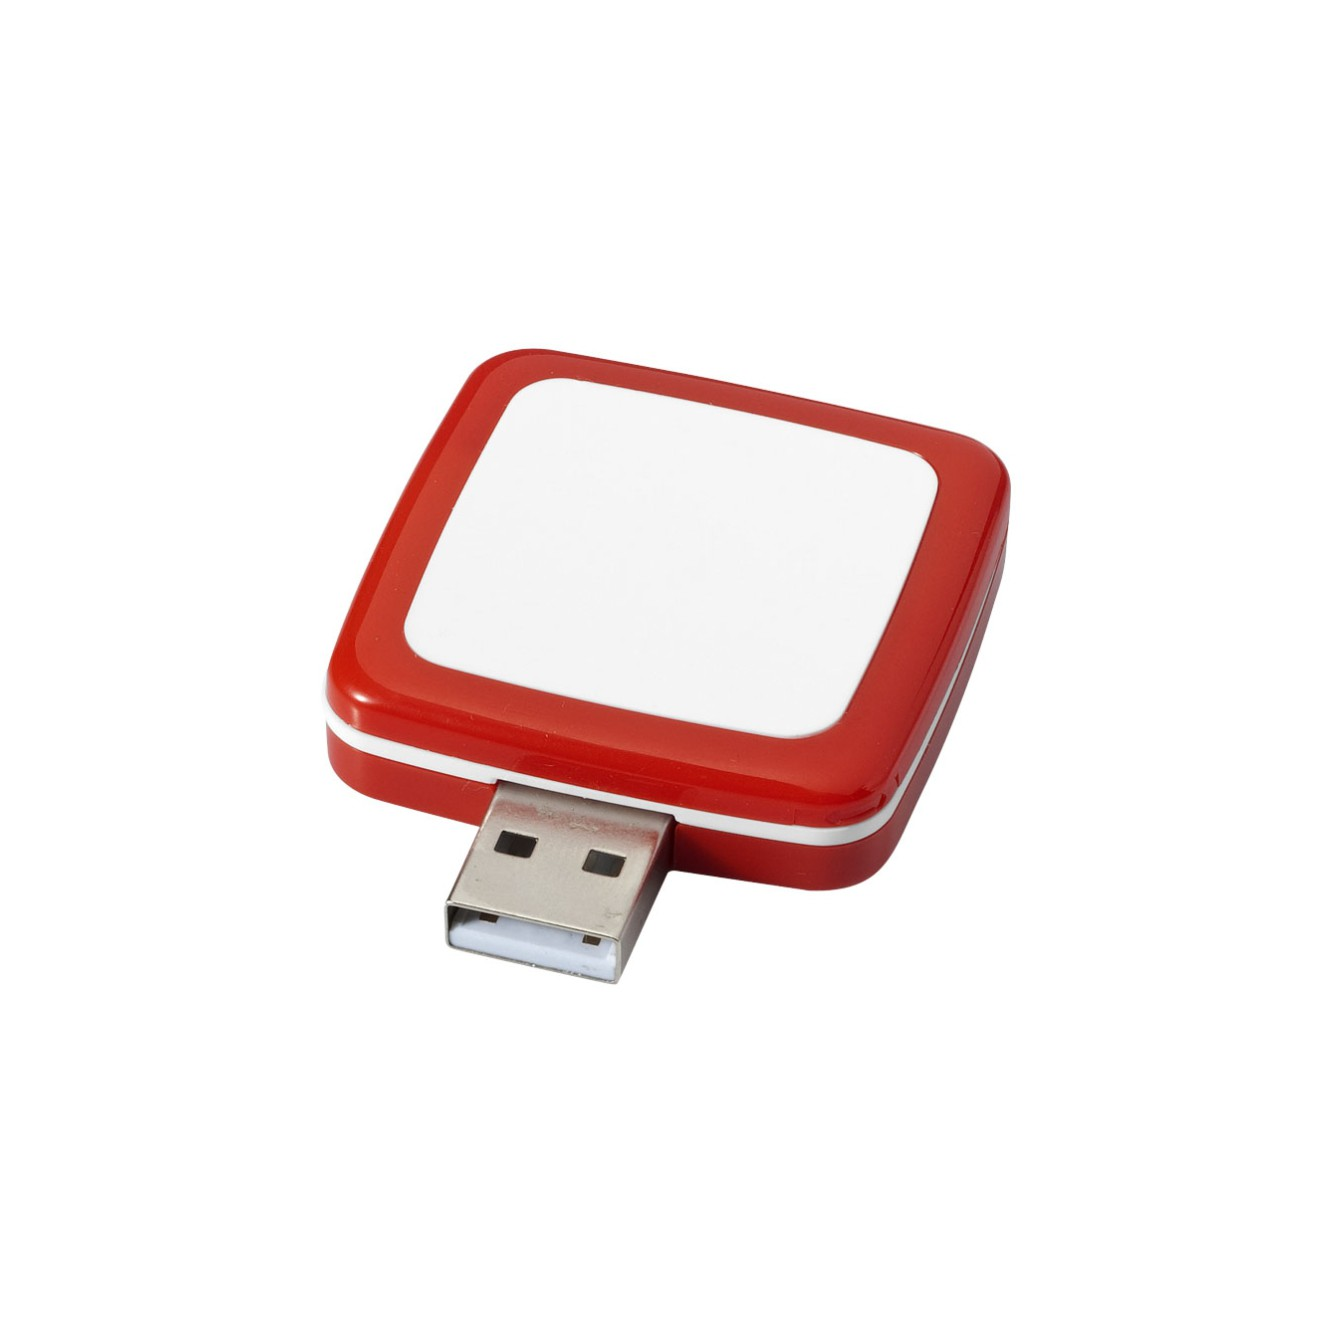 USB stick rotating square